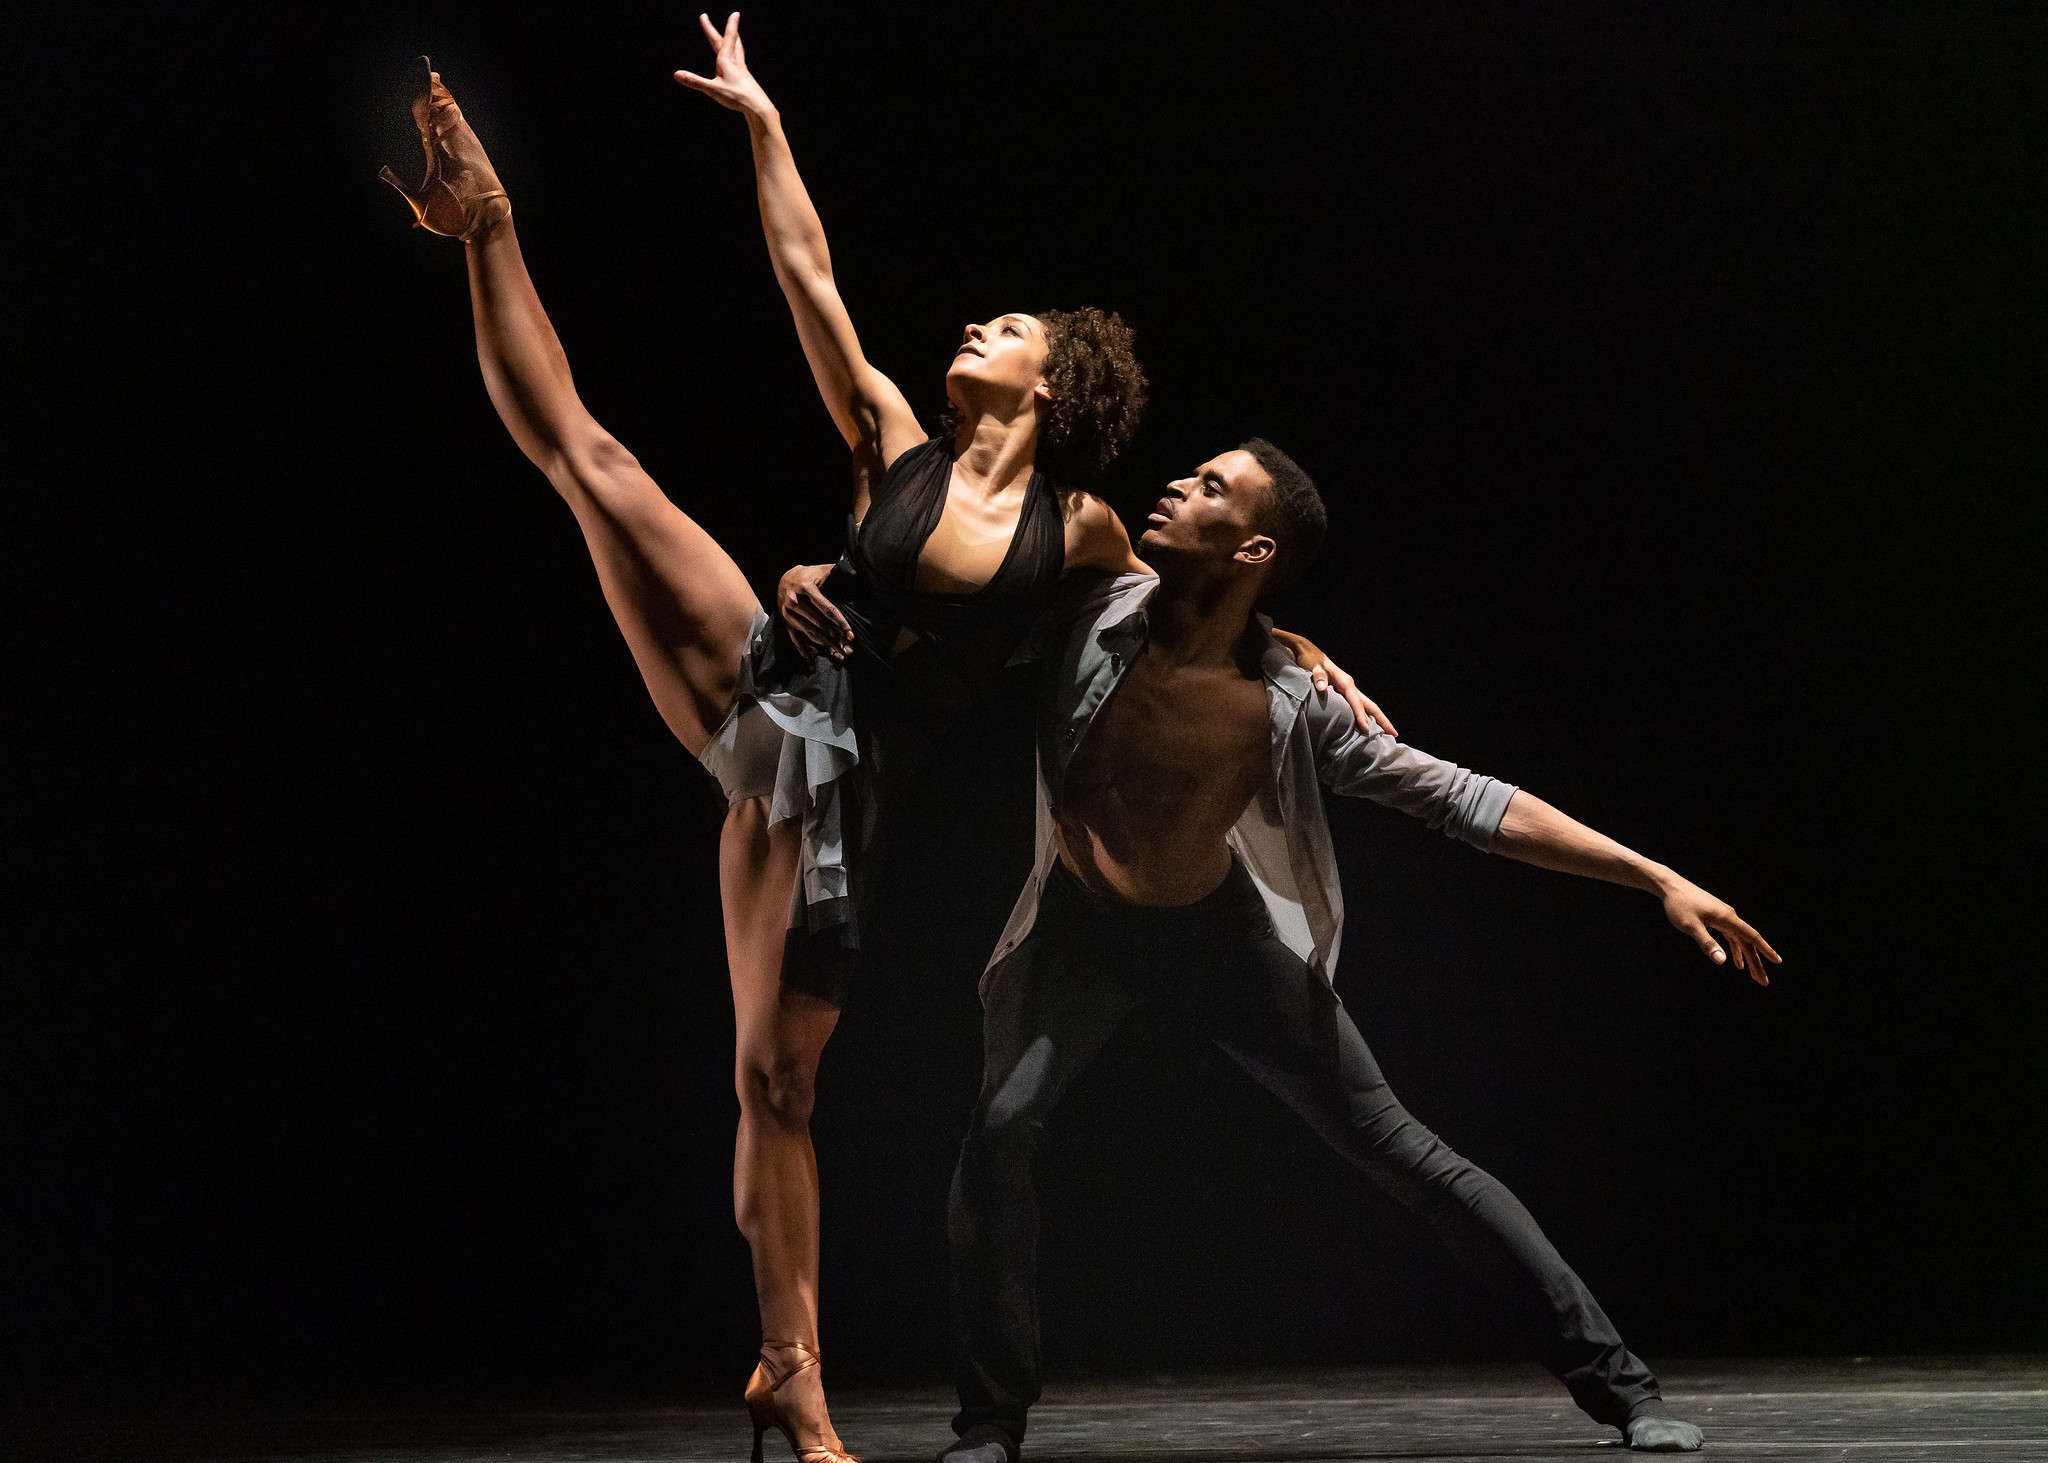 A woman and a man performing a dance routine against a black background